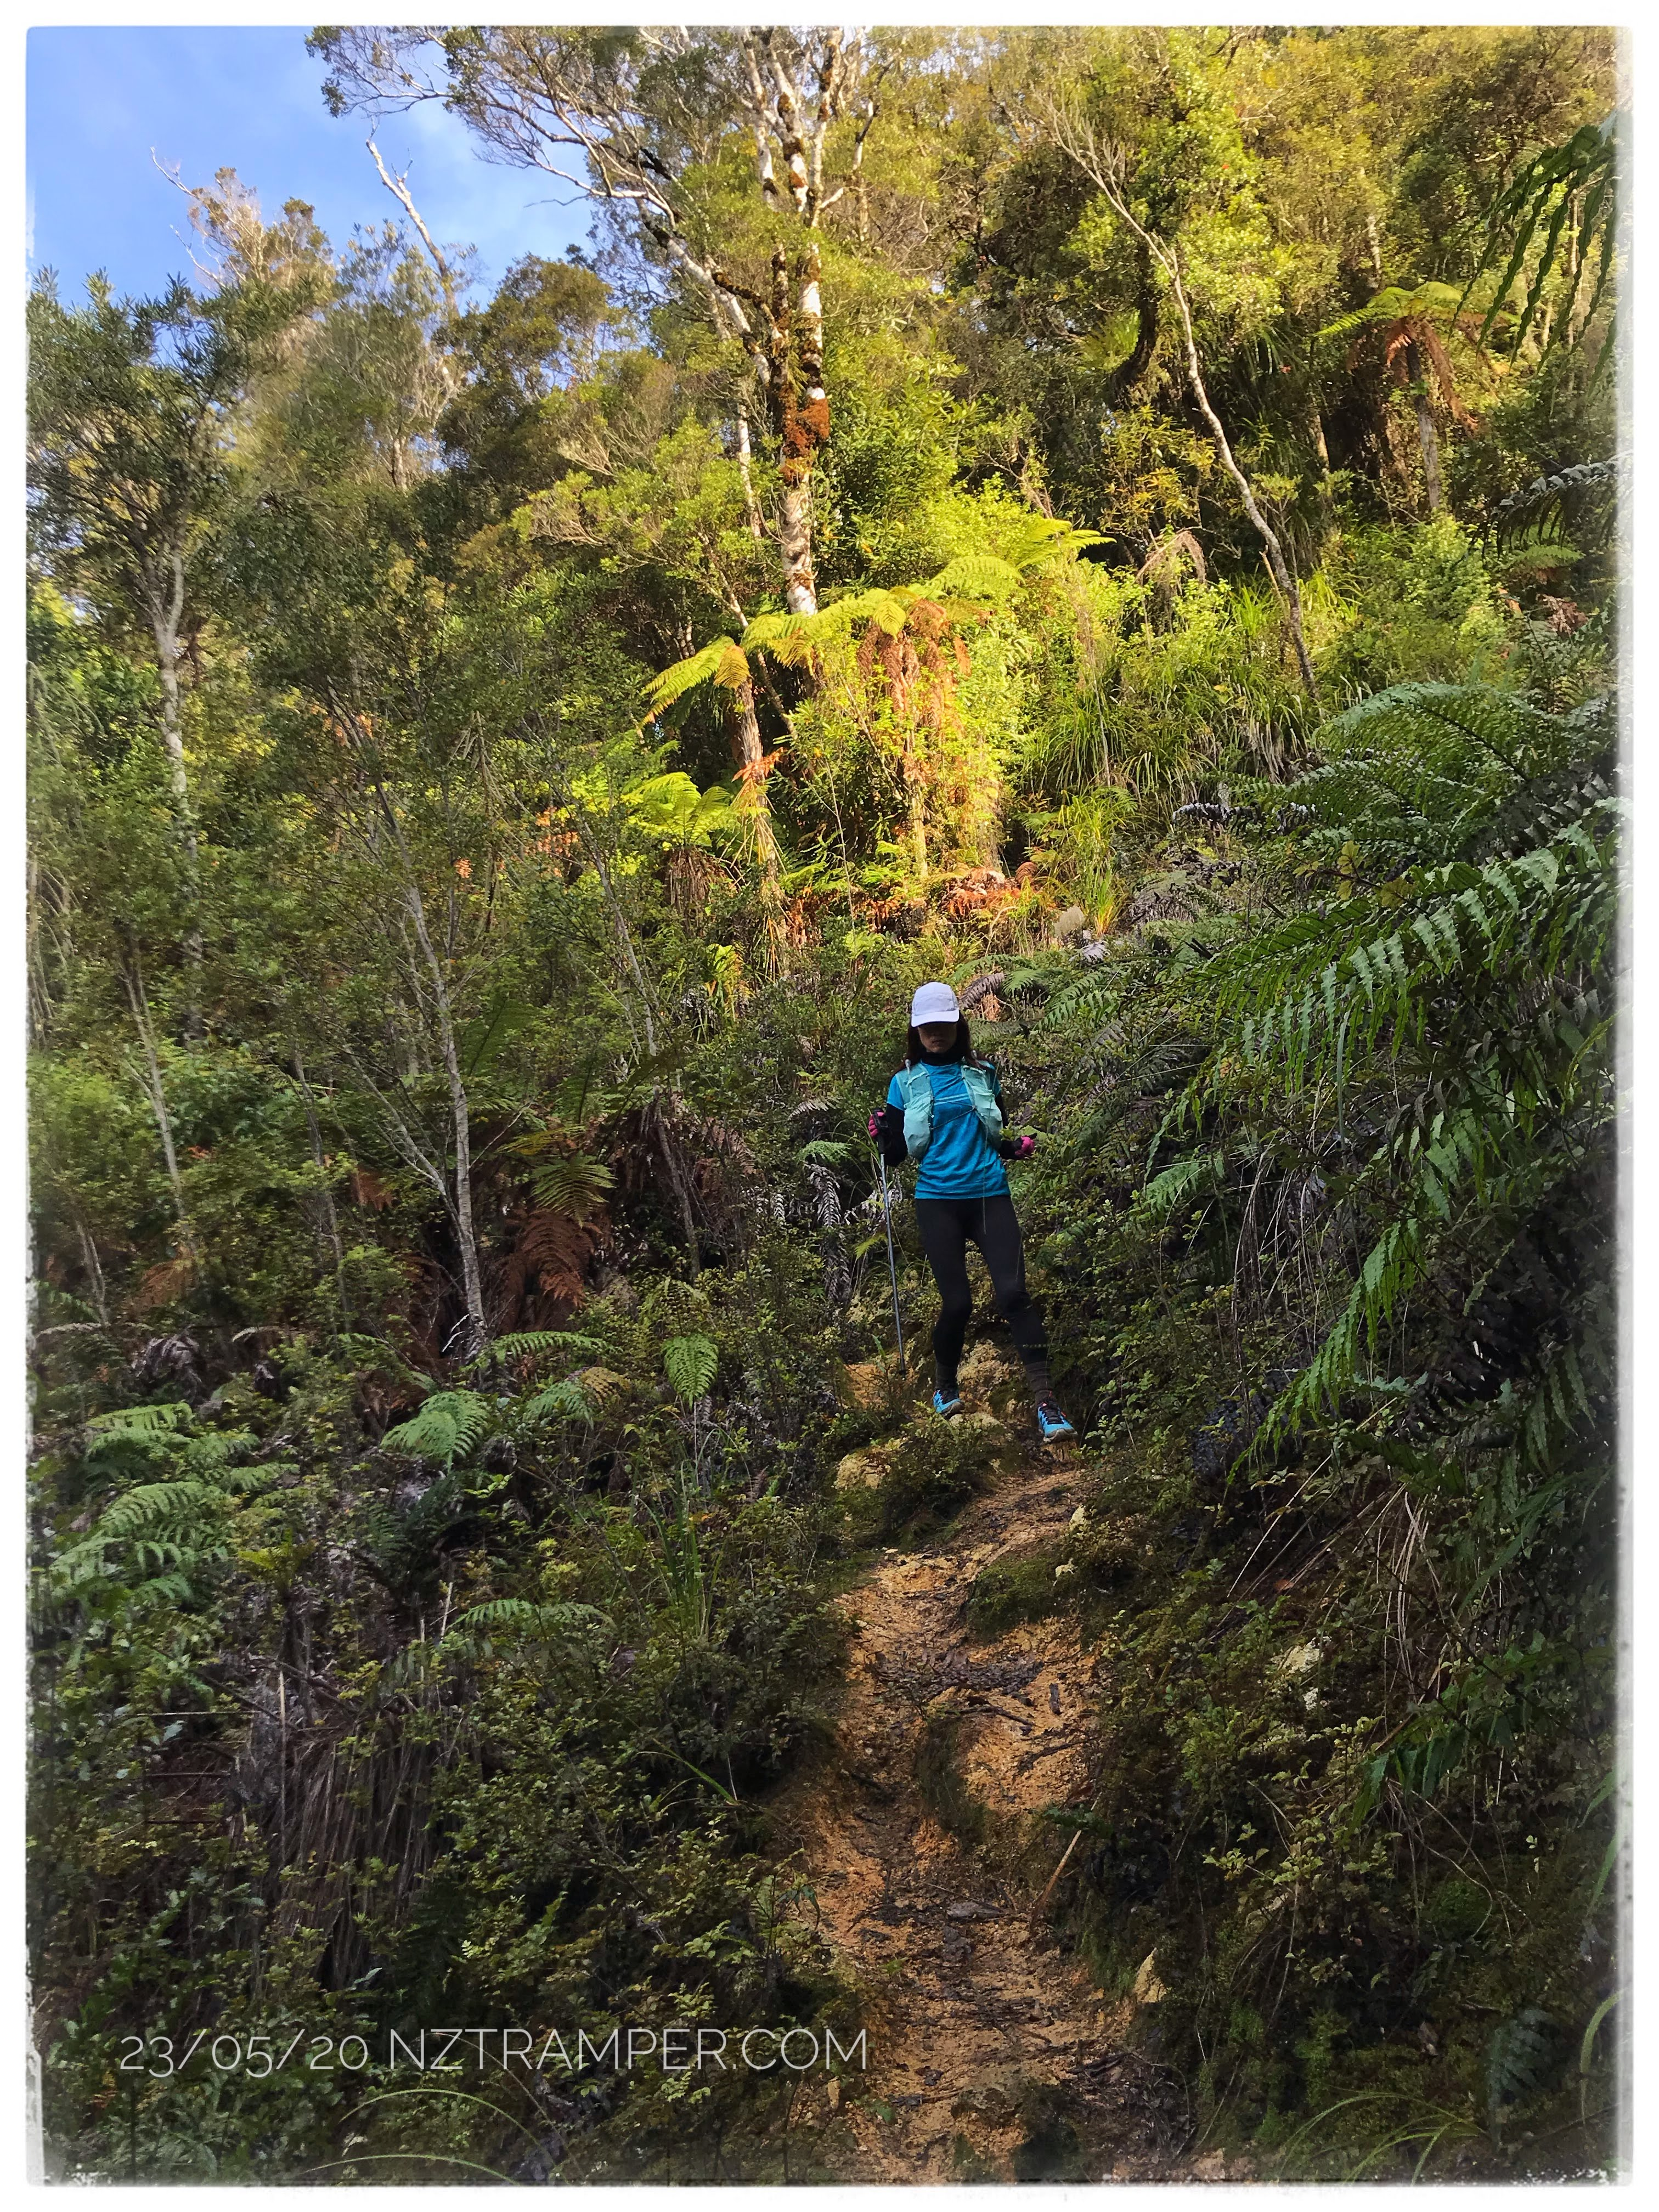 Trail running - Karaka Track to Crosbies Hut and return in Thames